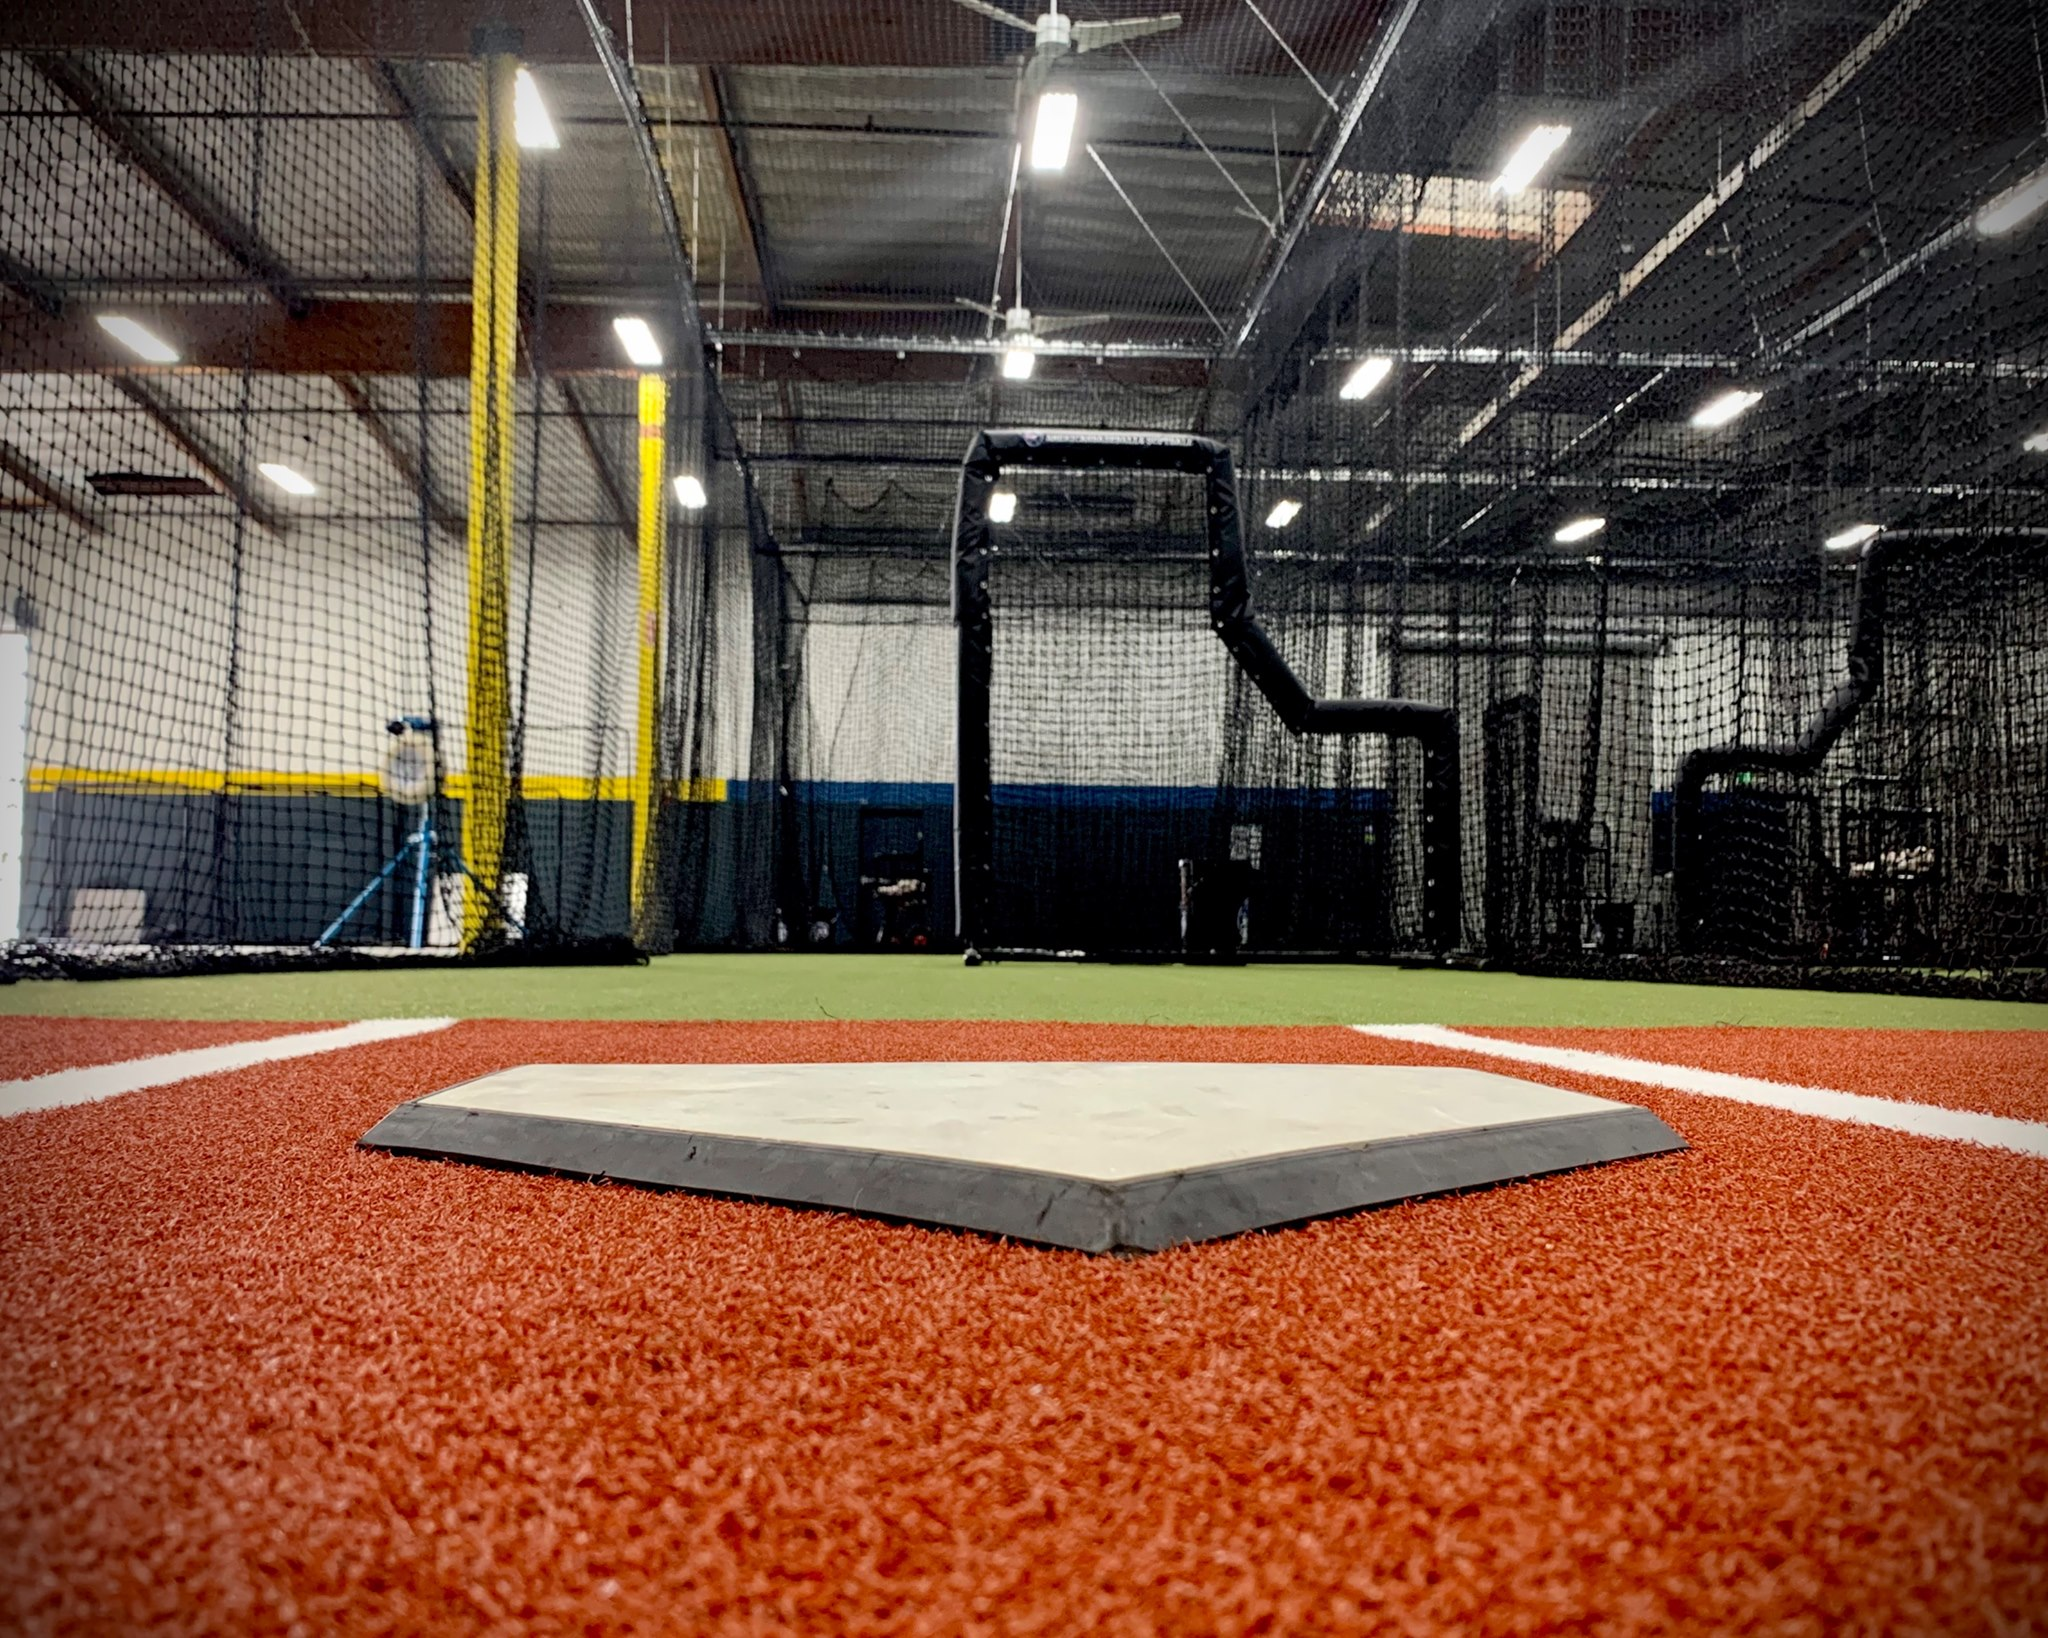 New Multi-functional Sports Facility in Orange County